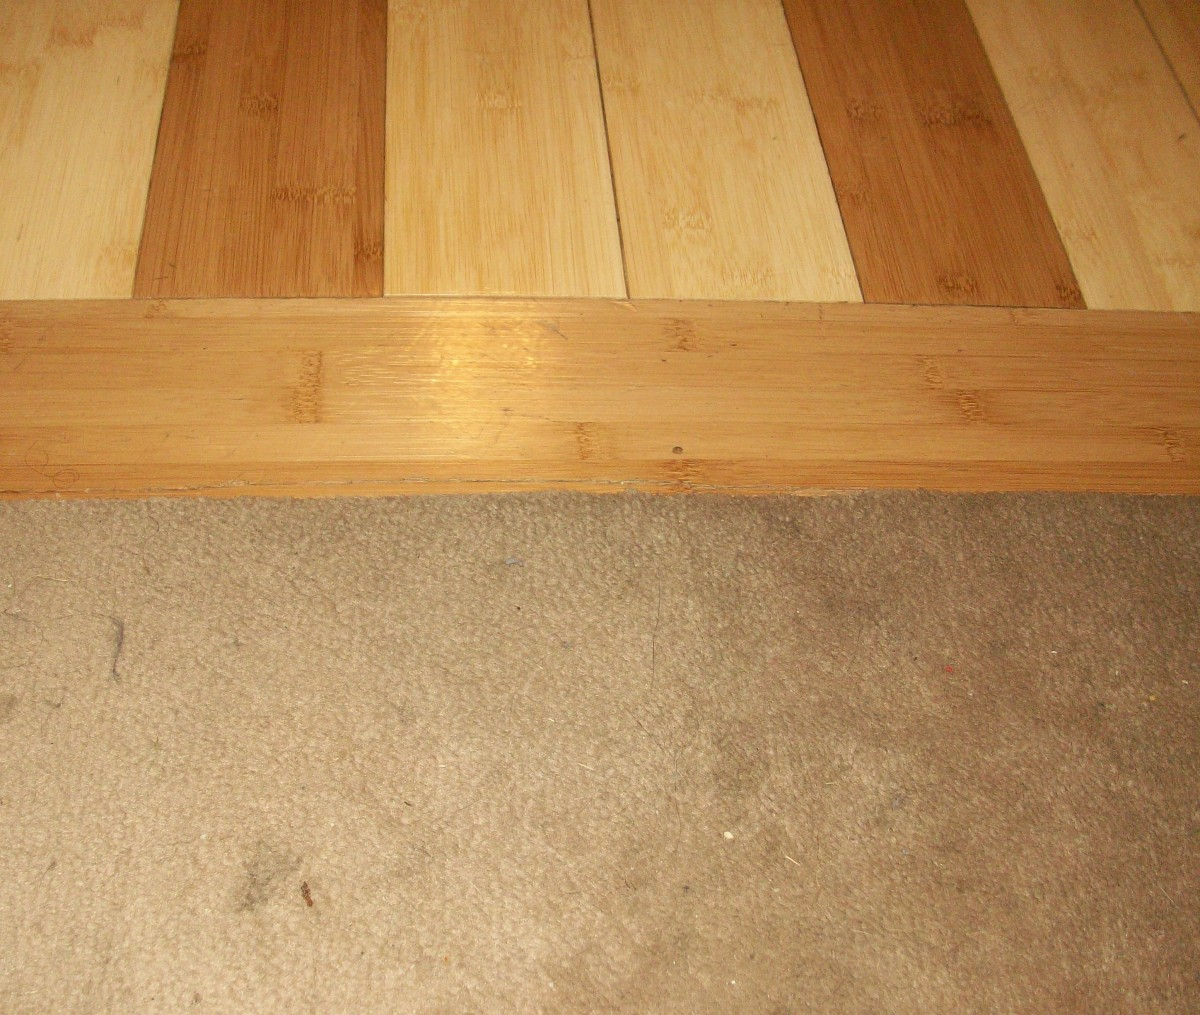 No trim; carpet tucked into the flooring groove